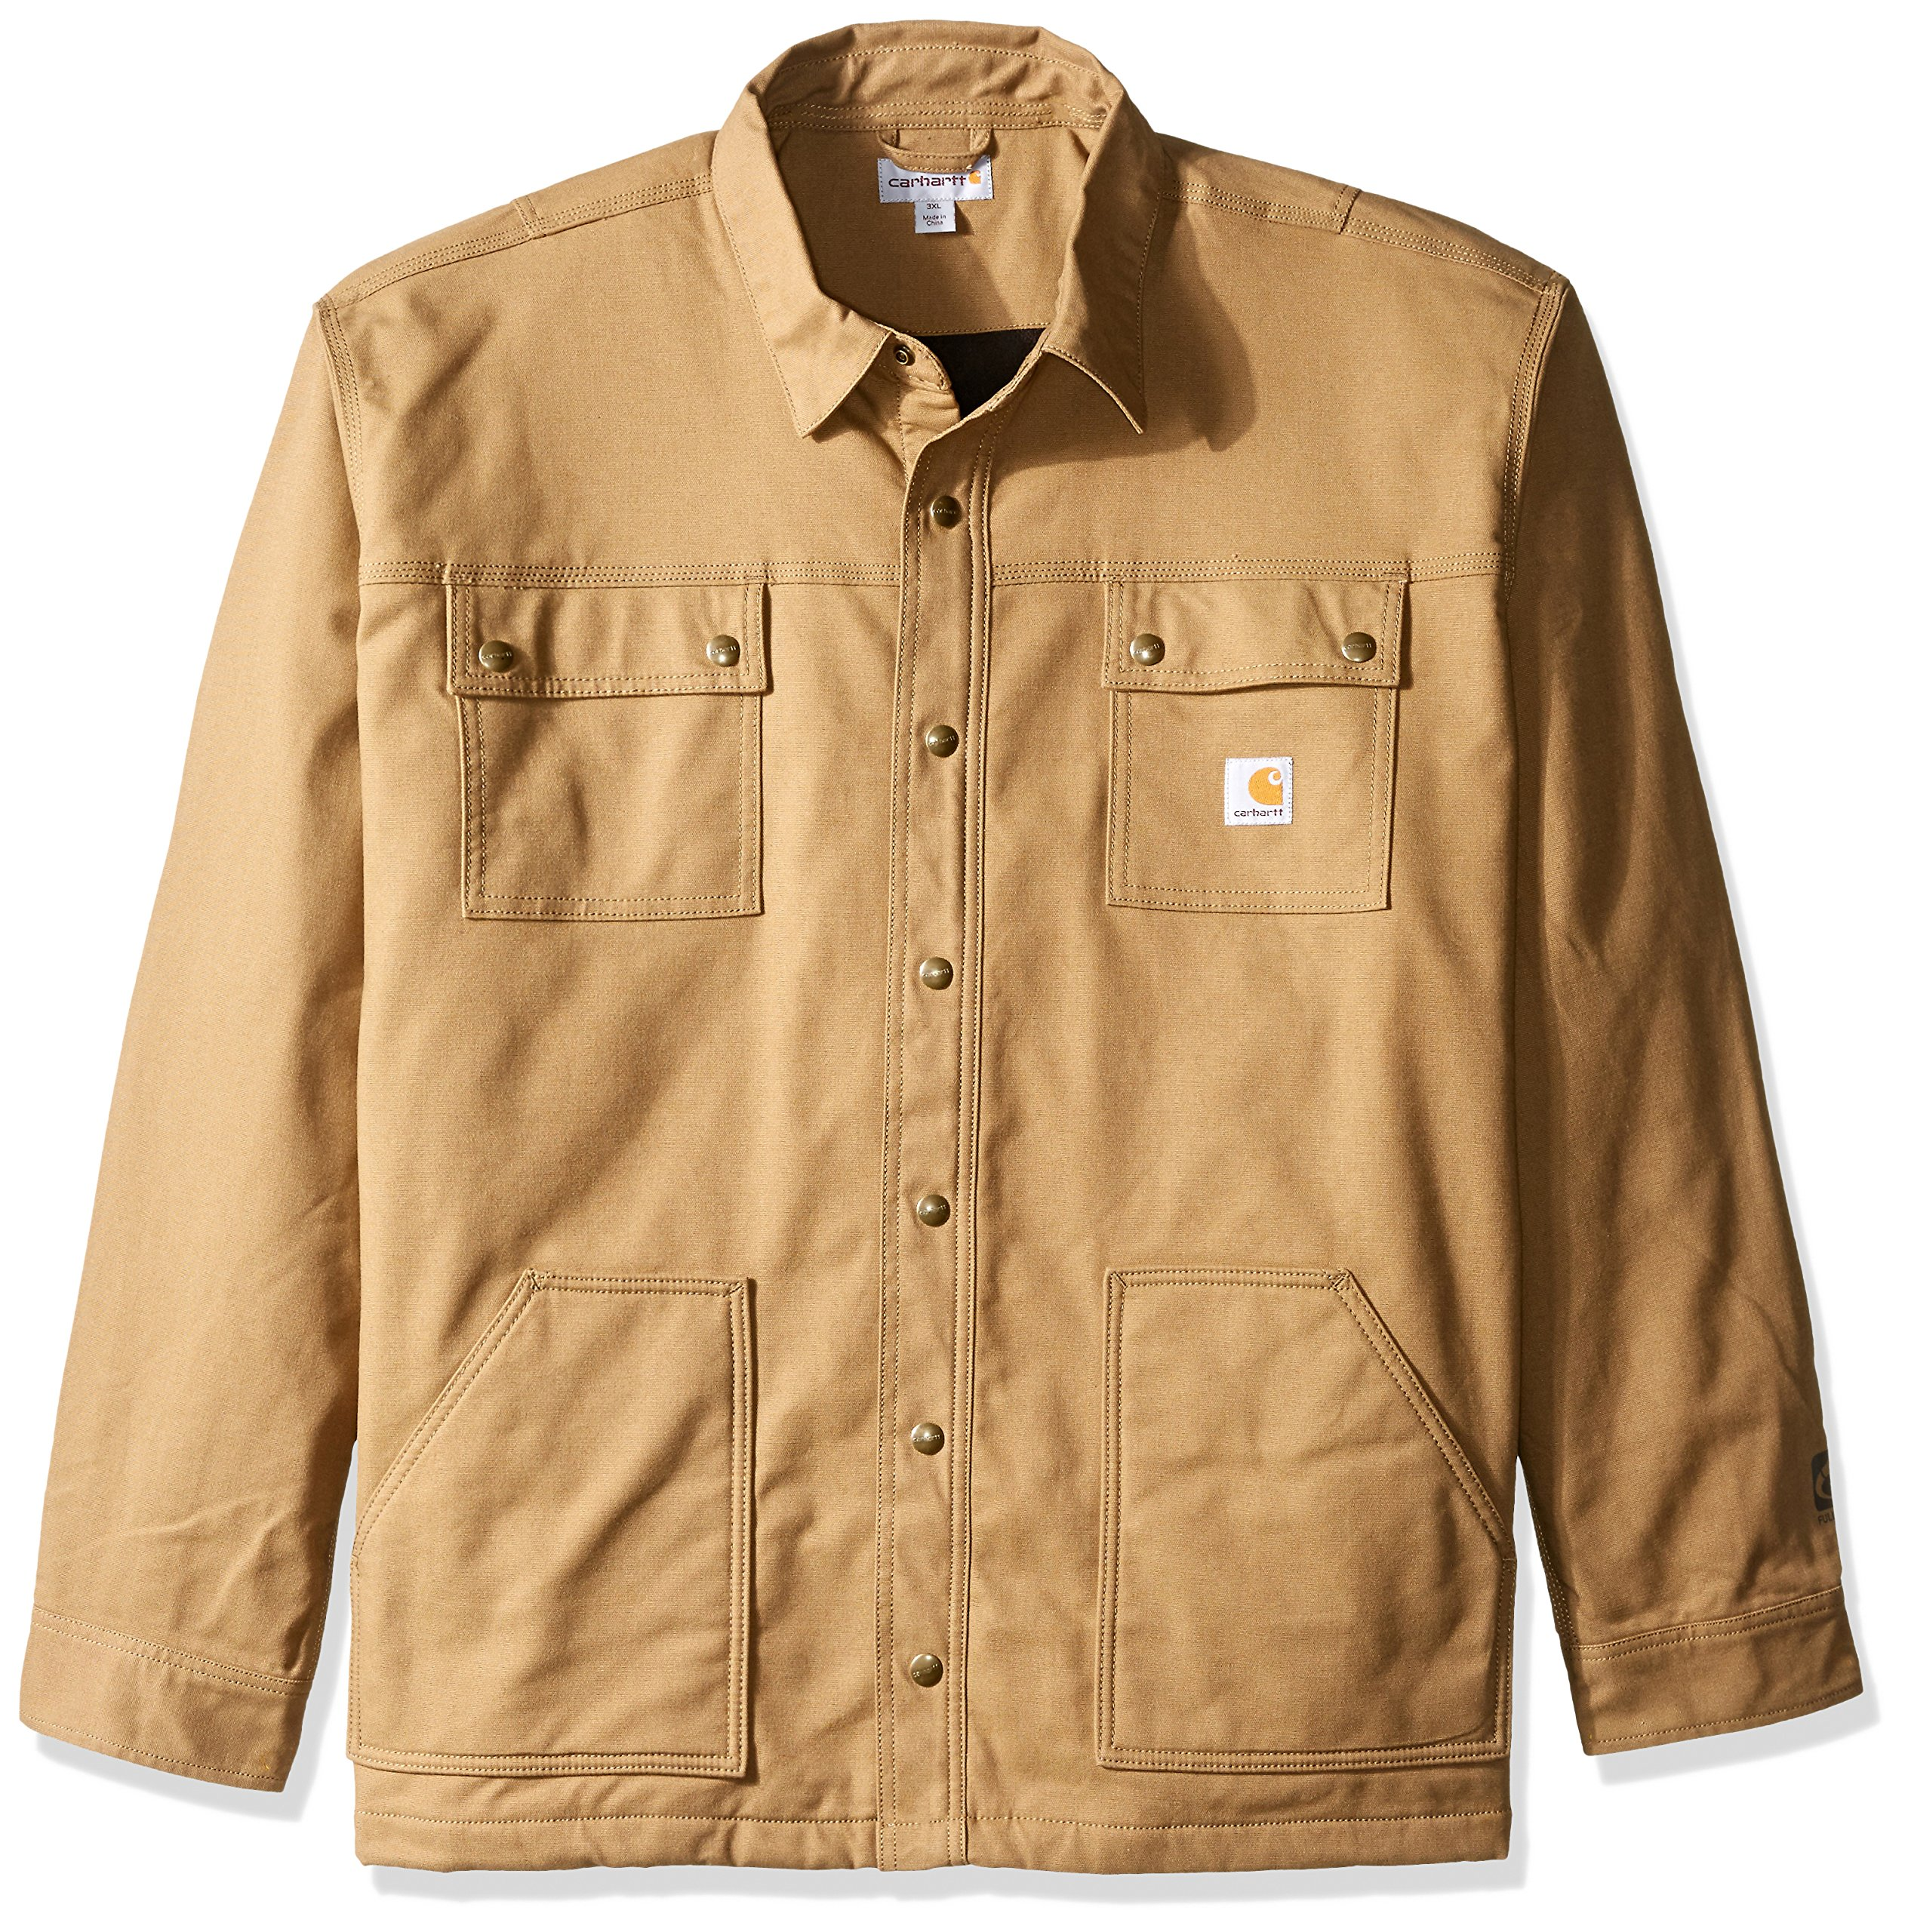 Carhartt Men's Big & Tall Full Swing Quick Duck Overland Shirt Jacket, Yukon, 3X-Large